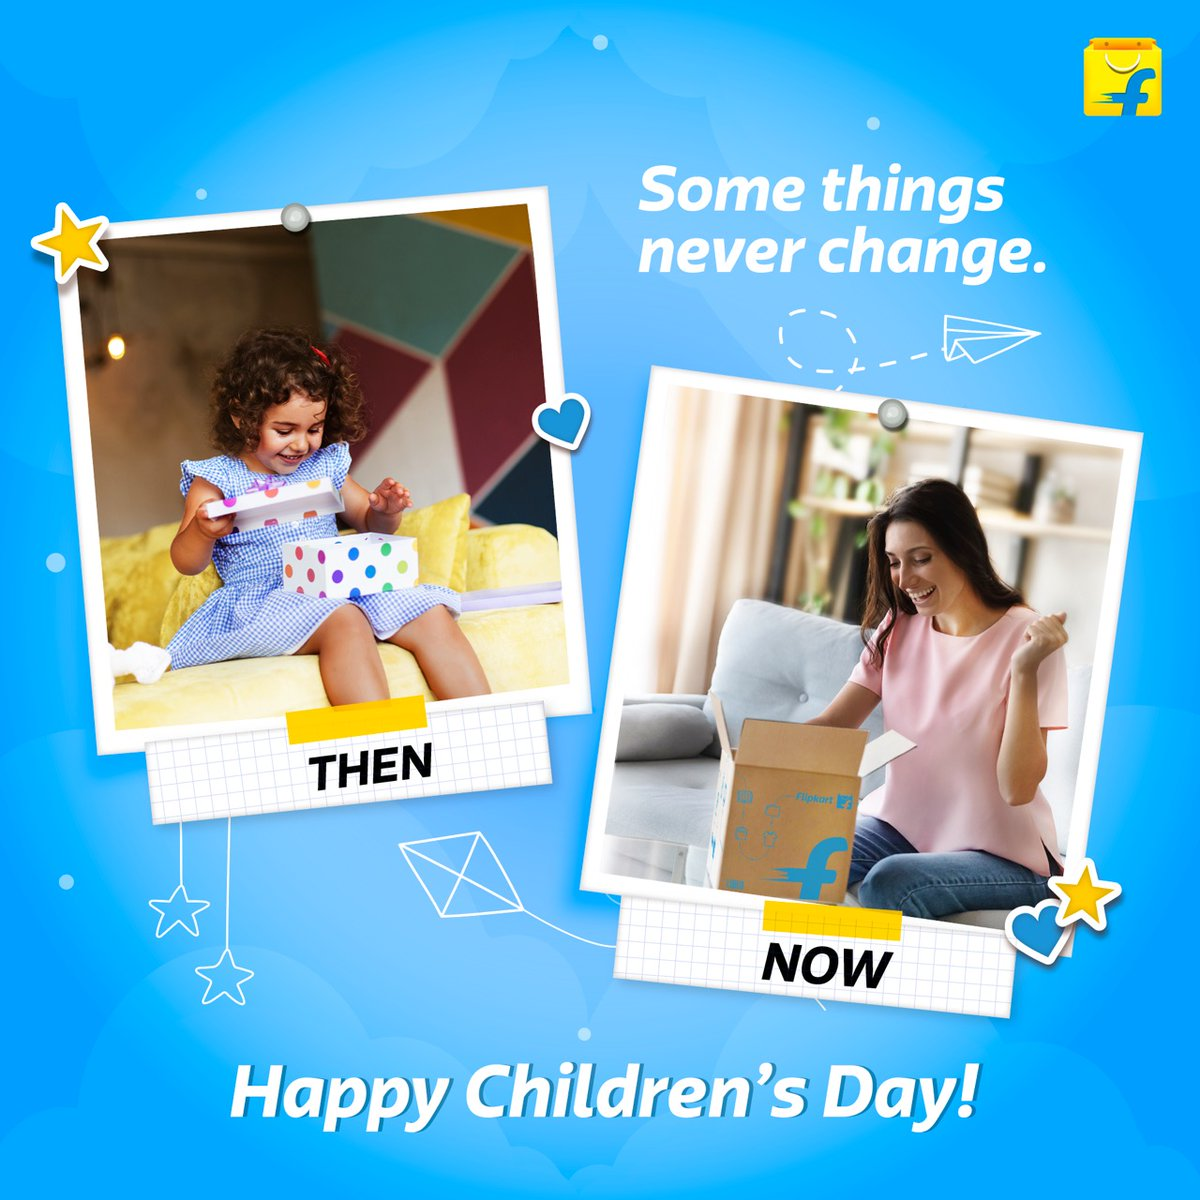 Somethings never change. Happy Children's Day to the inner child in all of us.